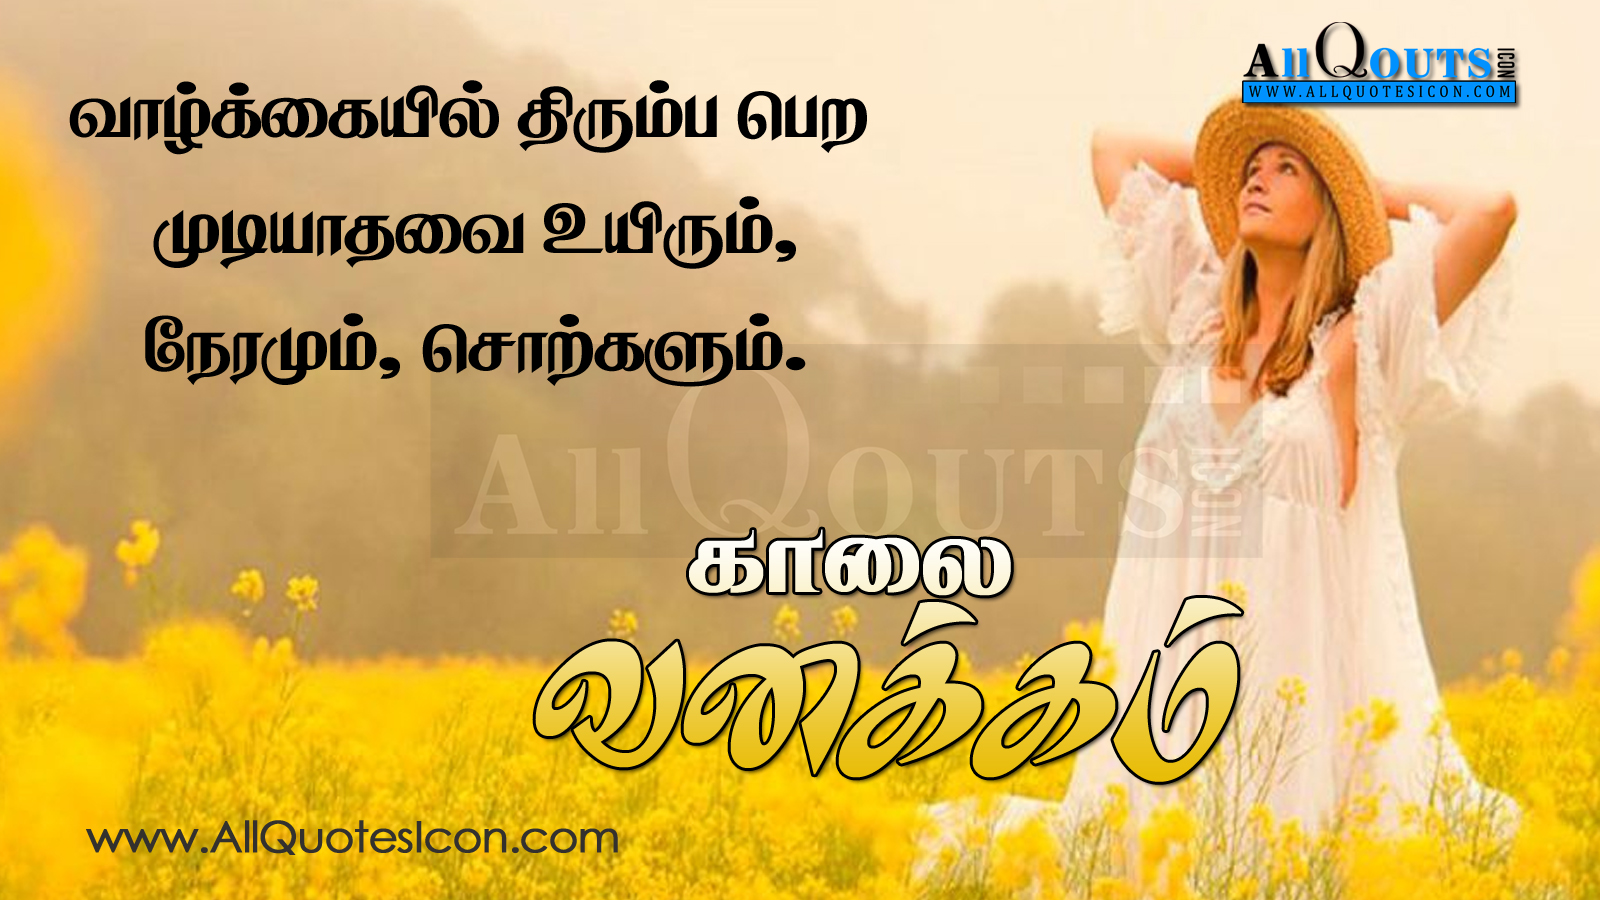 Good morning pictures tamil impremedia best tamil subhodayam images with quotes nice tamil subhodayam quotes pictures images of tamil subhodayam online kristyandbryce Choice Image